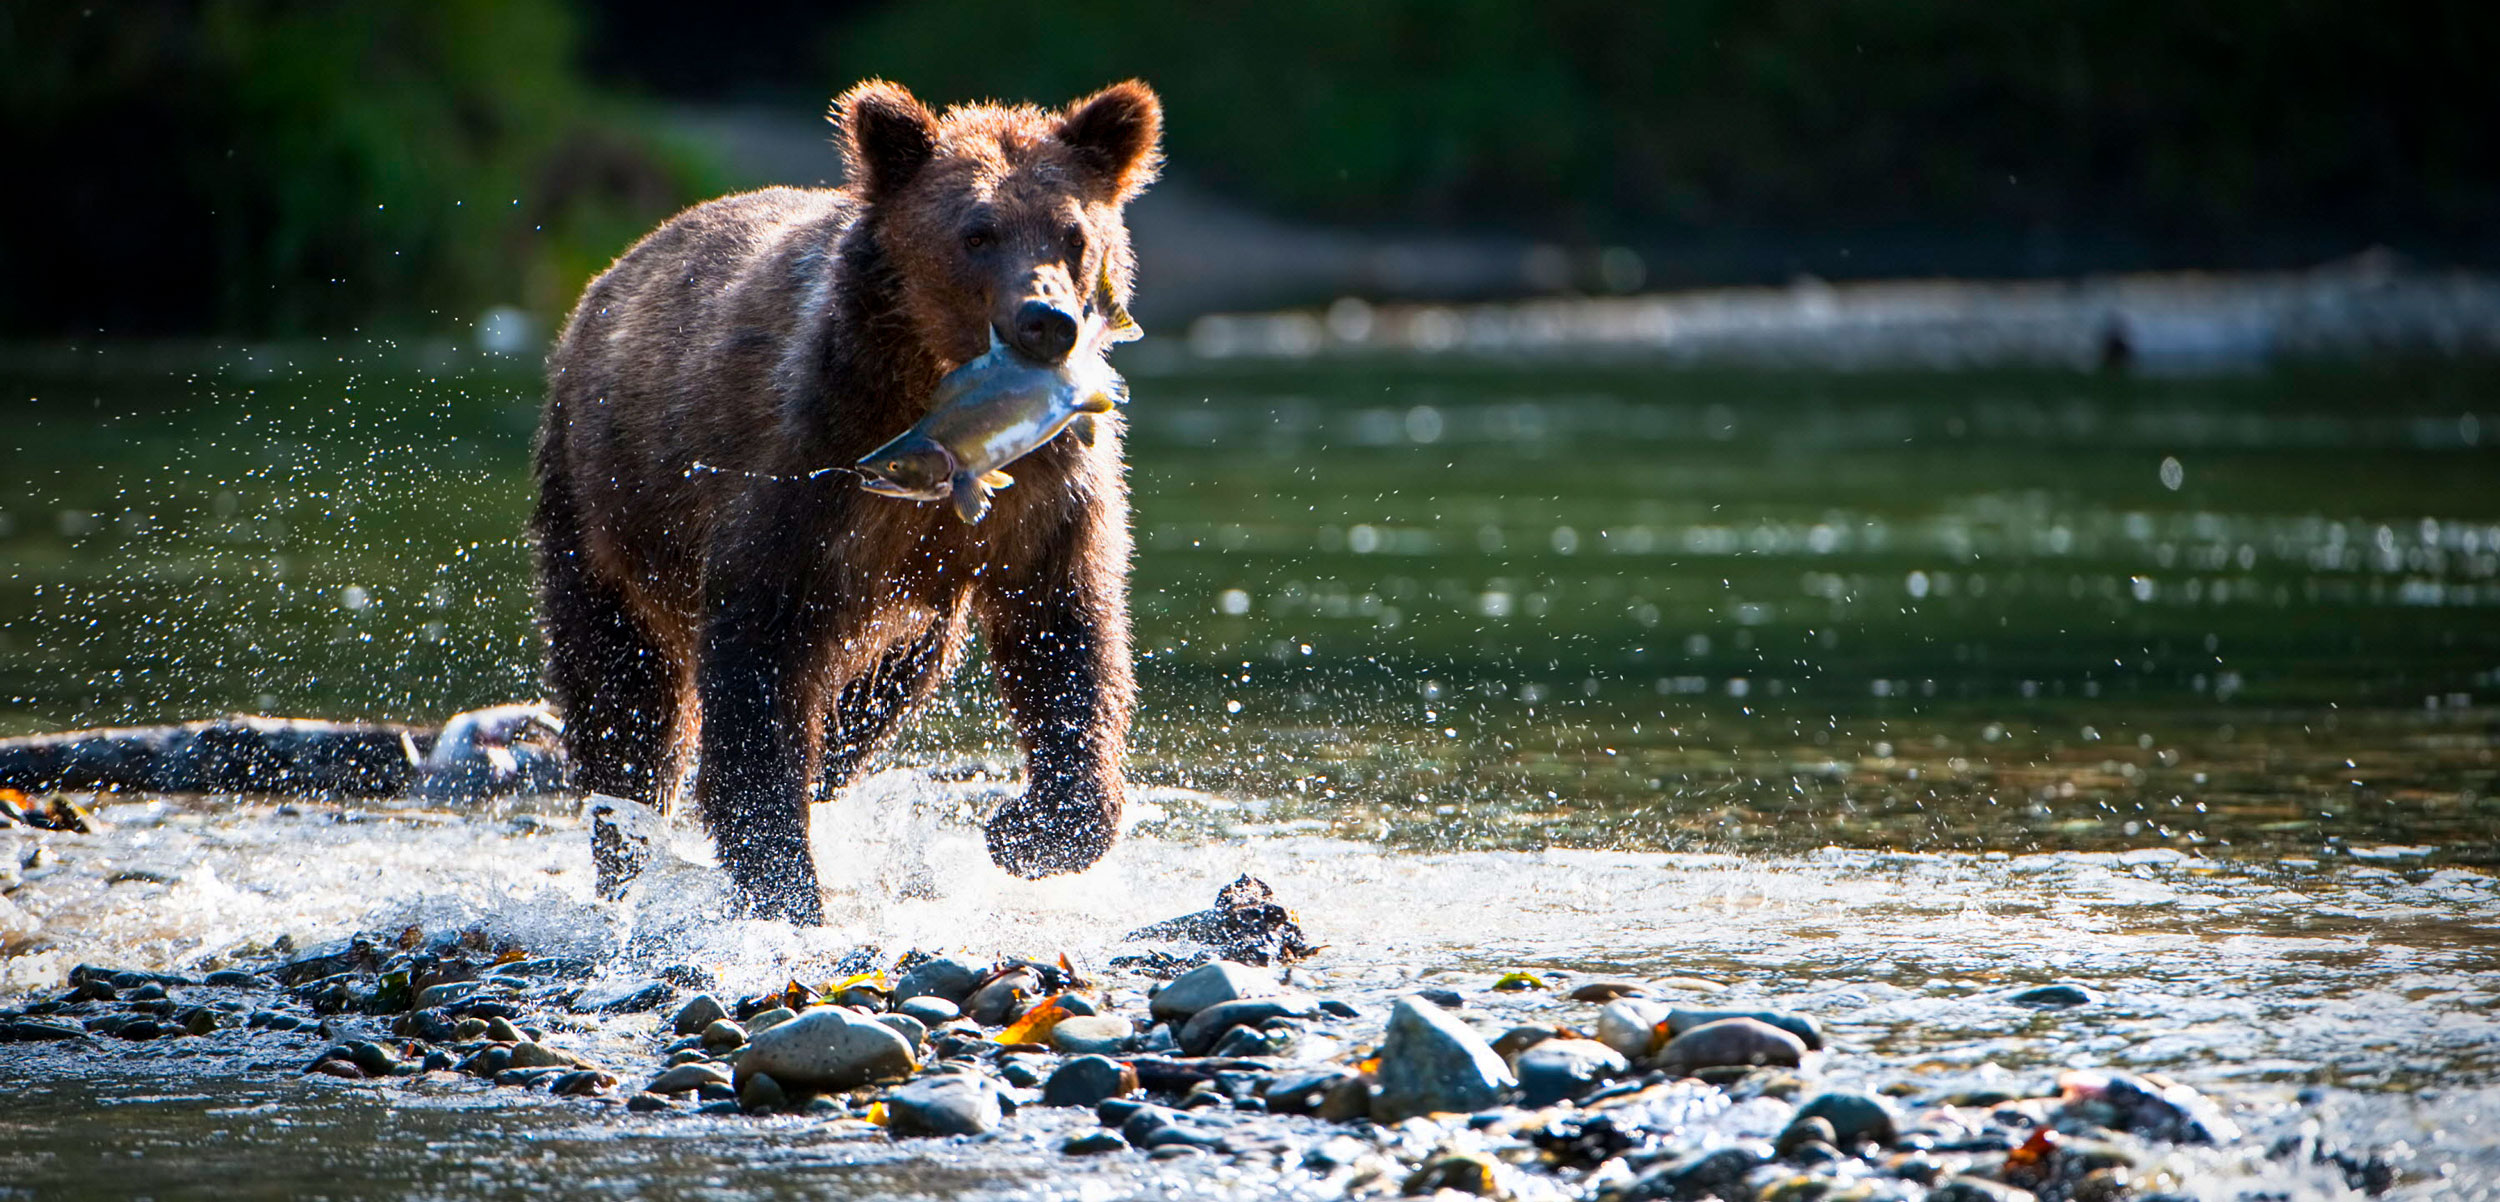 rizzly bear (Ursus arctos horribilis) running through water carrying Pink salmon (Oncorhynchus gorbuscha)